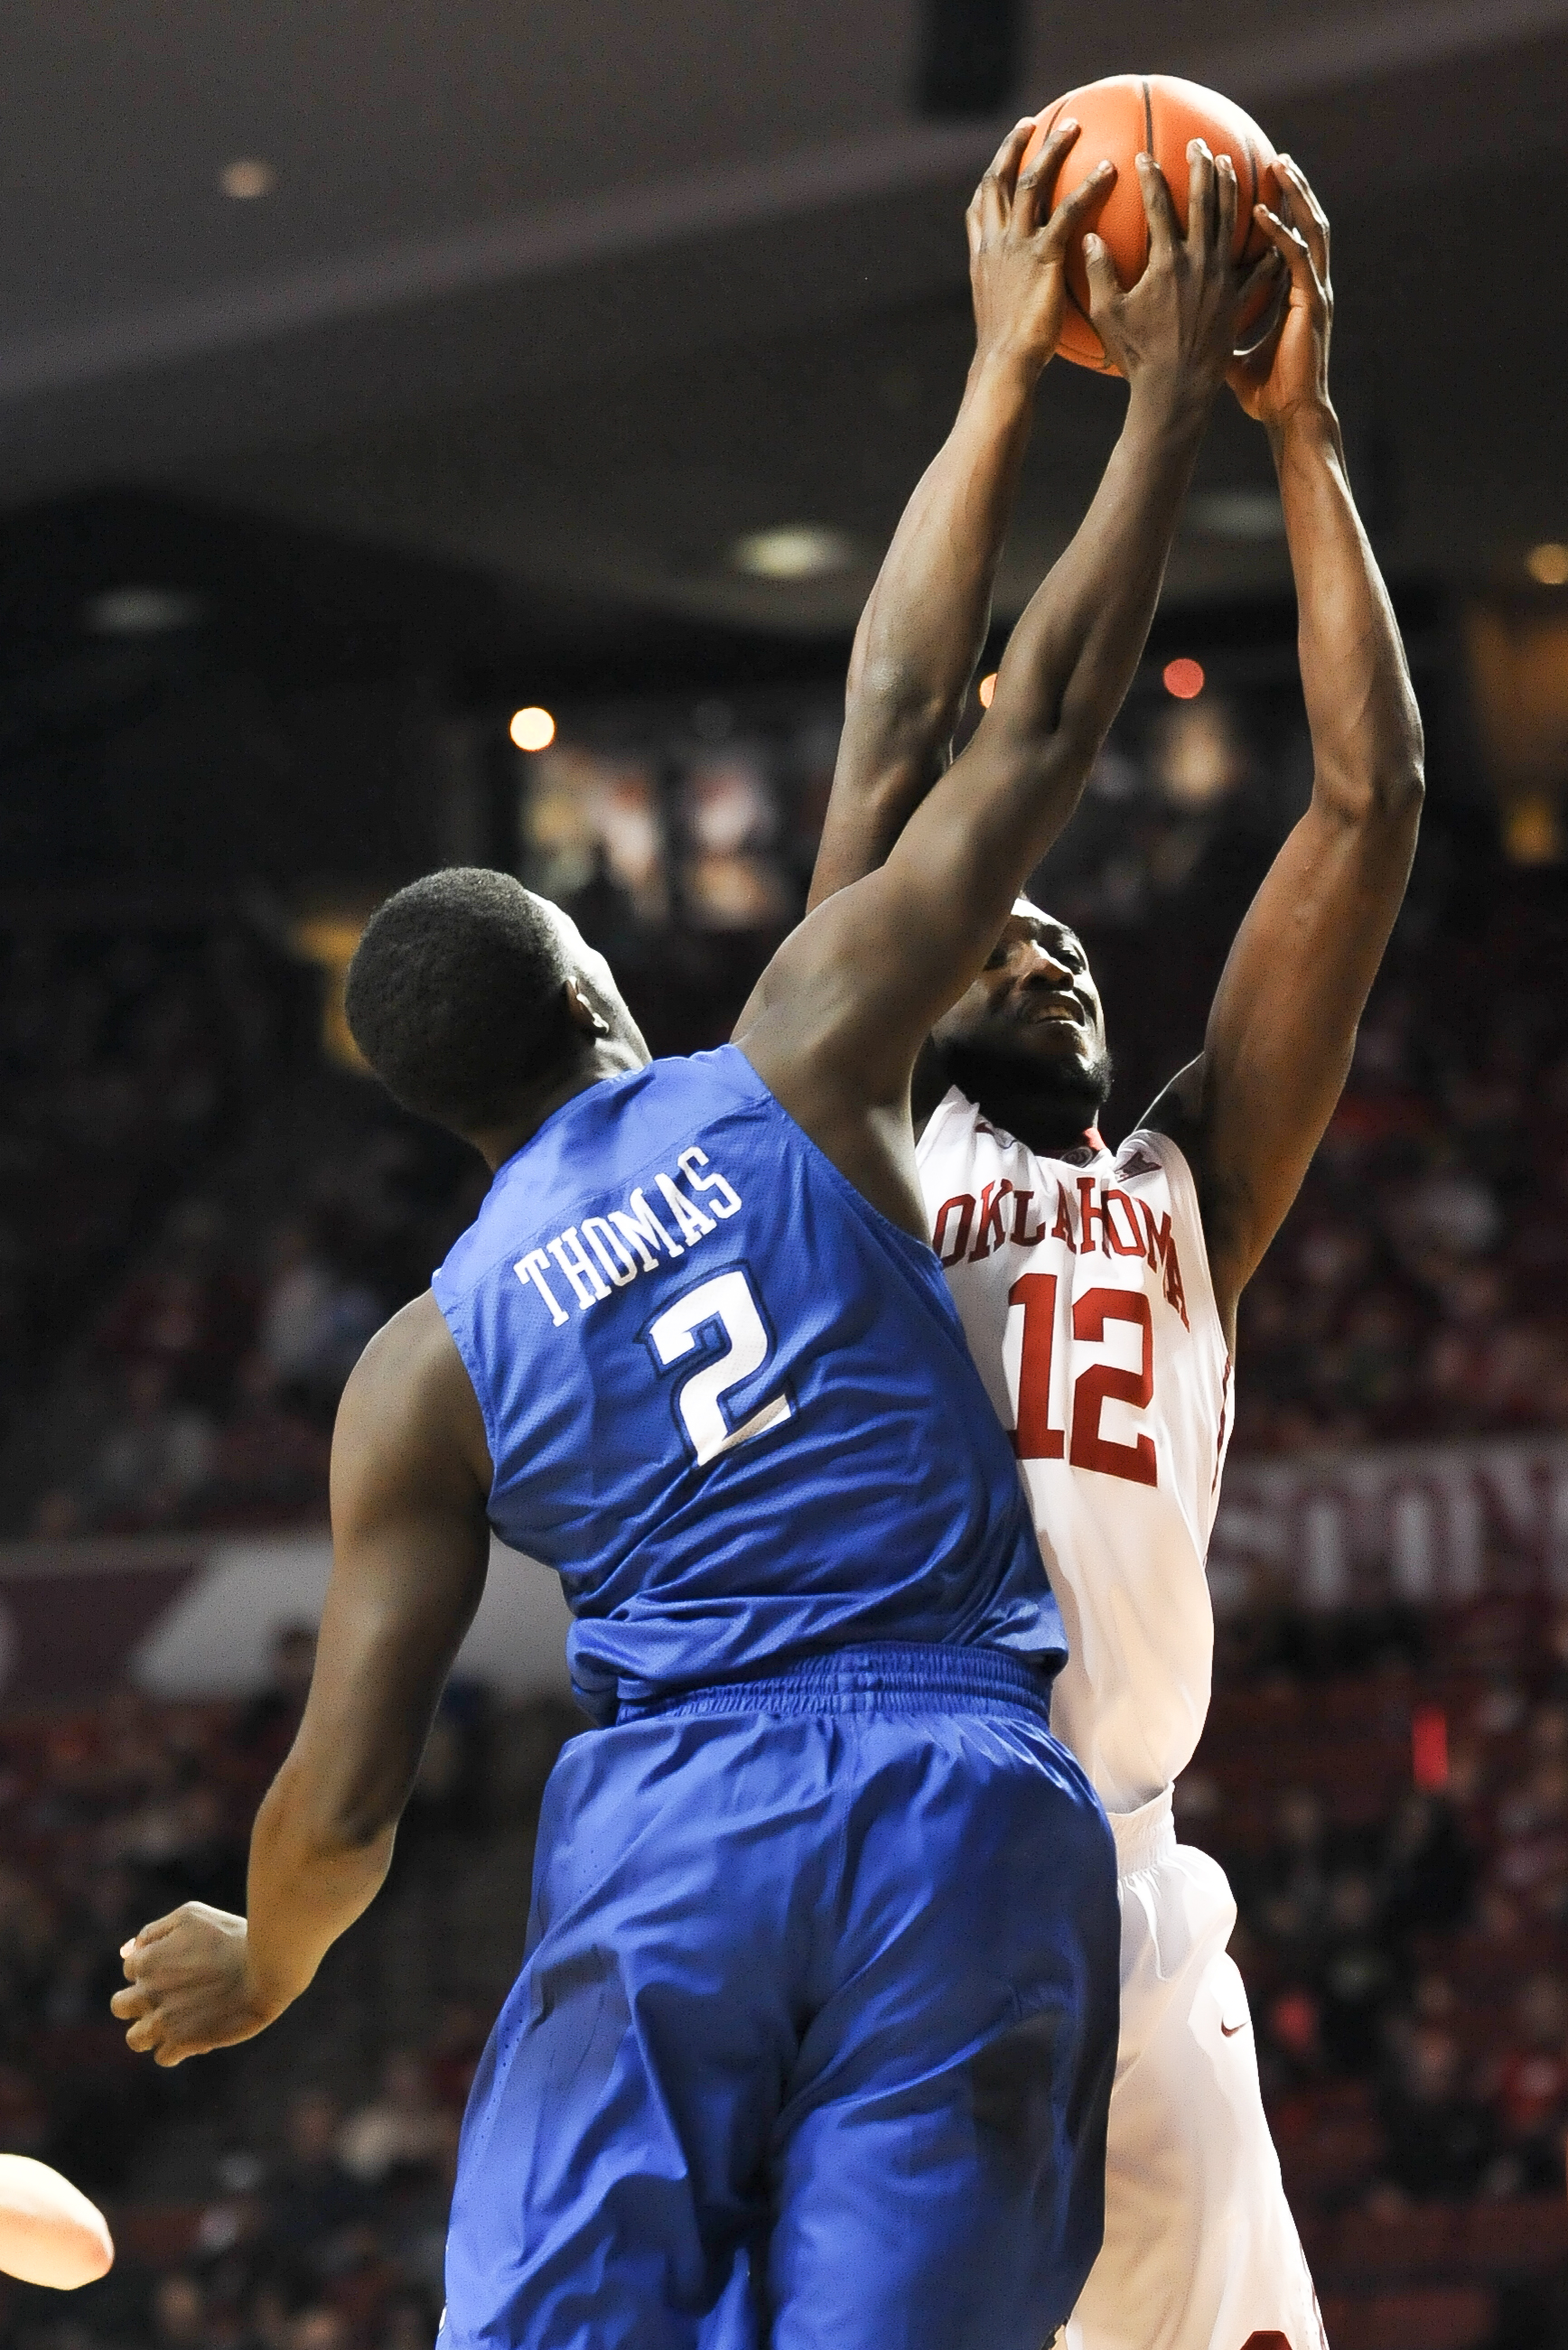 Oklahoma forward Khadeem Lattin (12) grabs a rebound over Creighton guard Khyri Thomas (2) during the first half of an NCAA basketball game in Norman, Okla., Saturday, Dec. 19, 2015. (AP Photo/Kyle Phillips)